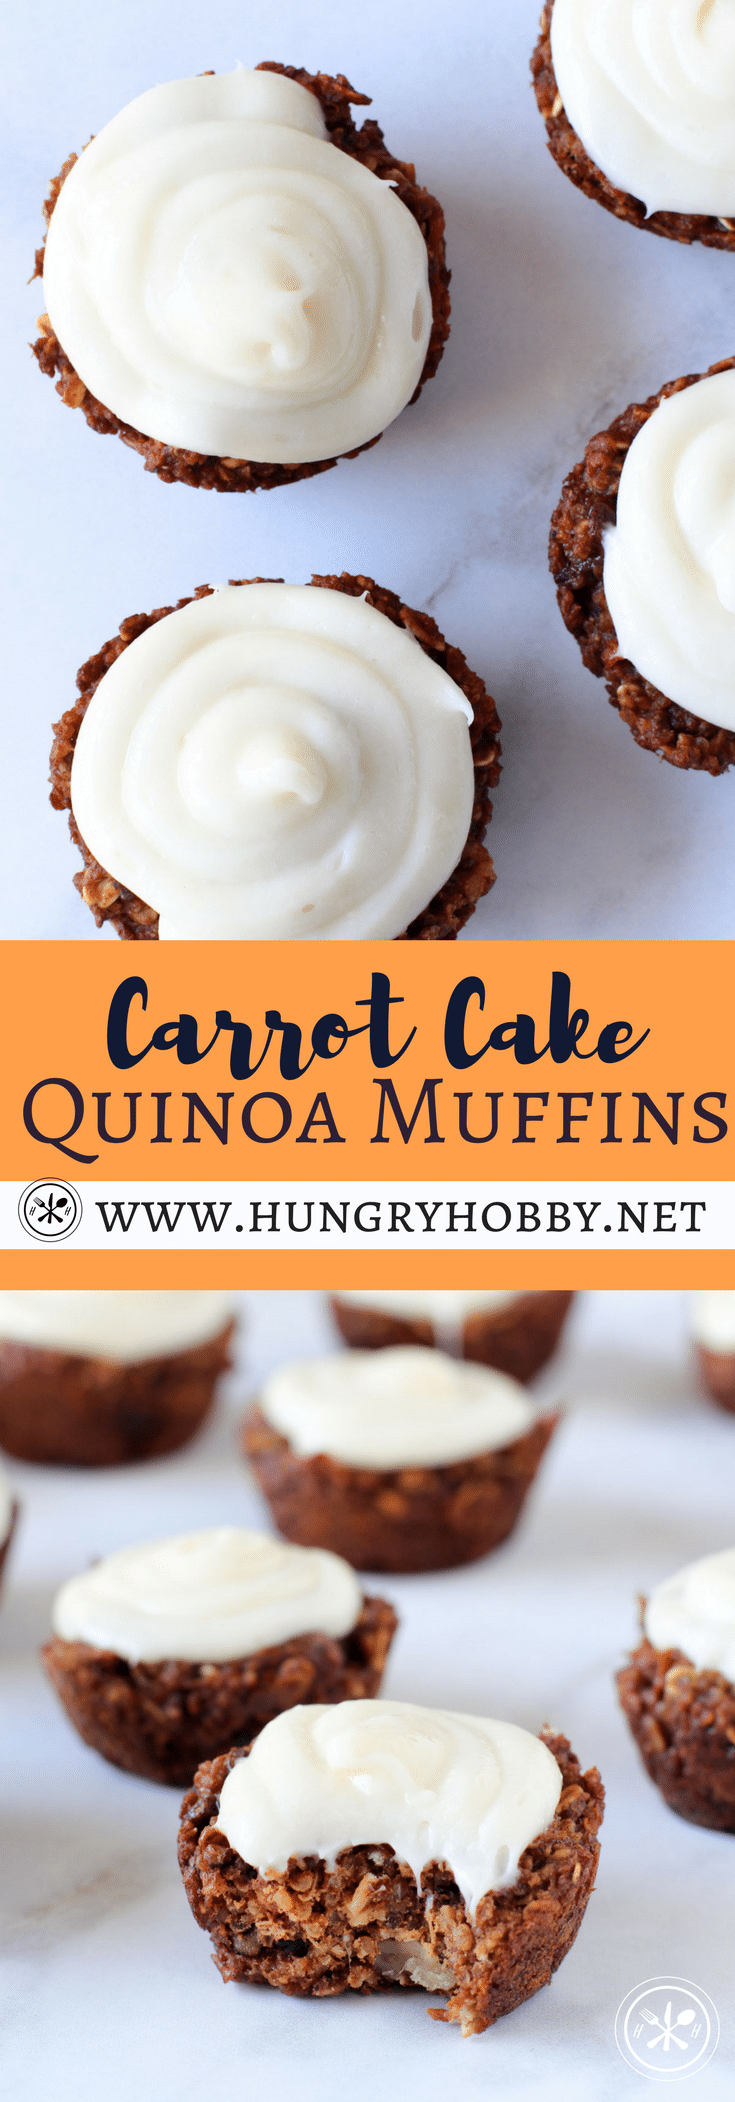 These muffins are packed with good for you ingredients but then cream cheese frosting slathered on to of these babies disguises any shred of healthiness! #glutenfree #carrotcake #hungryhobby #healthymuffin #muffin